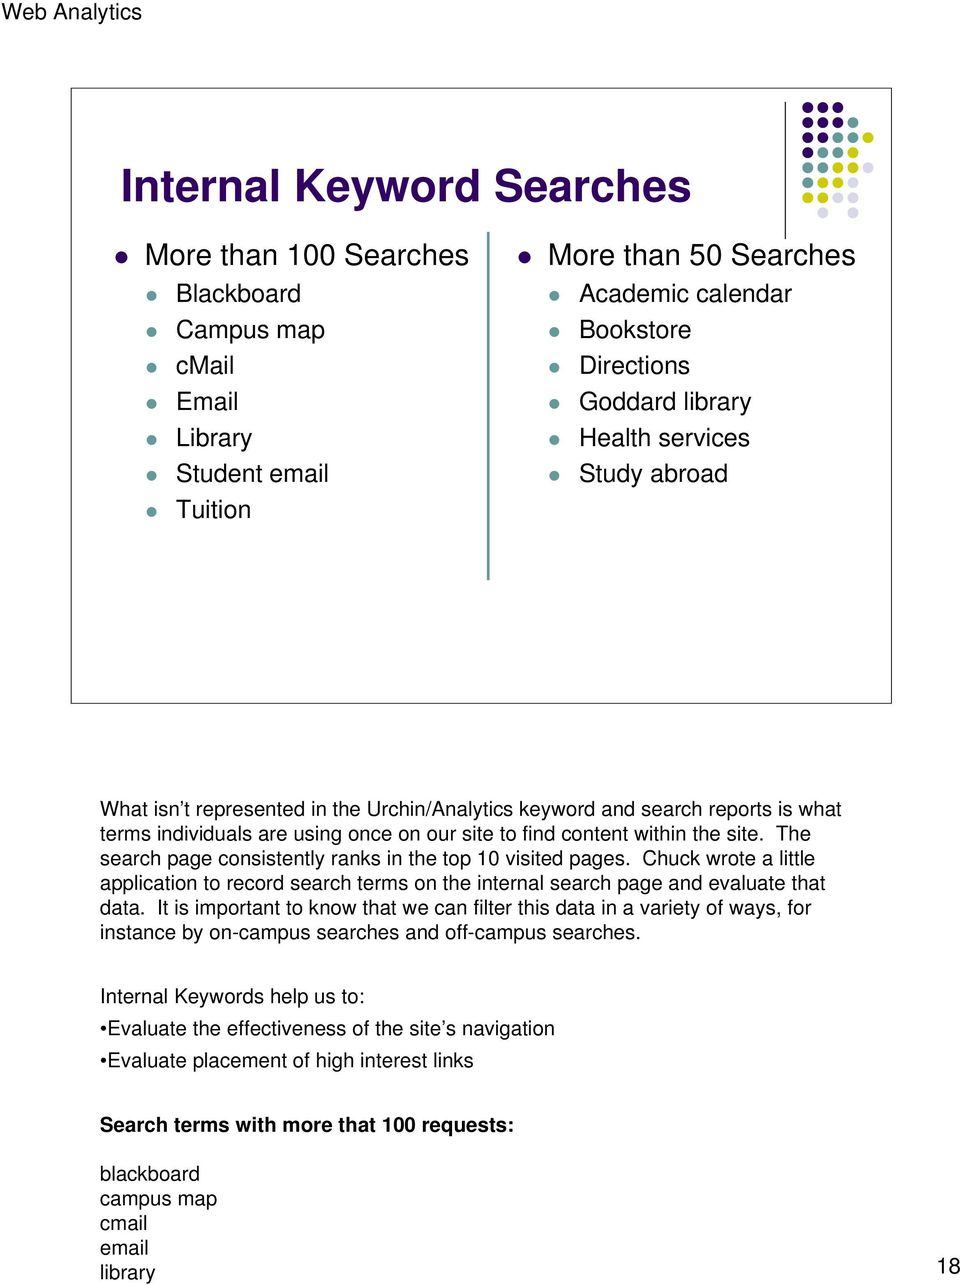 The search page consistently ranks in the top 10 visited pages. Chuck wrote a little application to record search terms on the internal search page and evaluate that data.